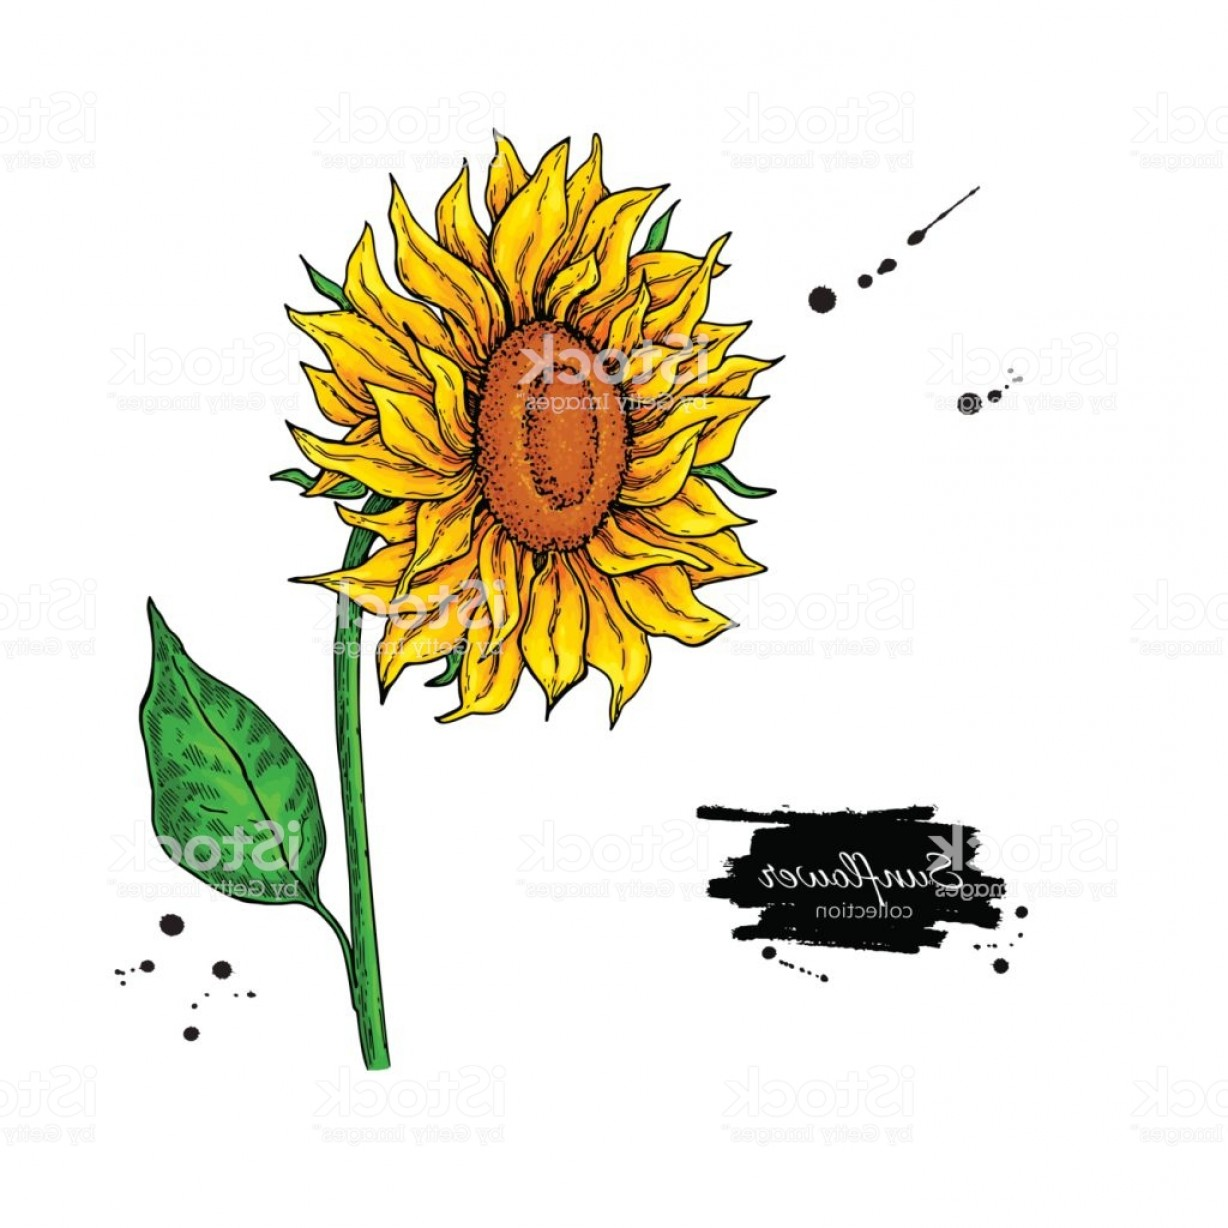 Seed Flower Vectors: Sunflower Flower Vector Drawing Hand Drawn Illustration Isolated On White Background Gm